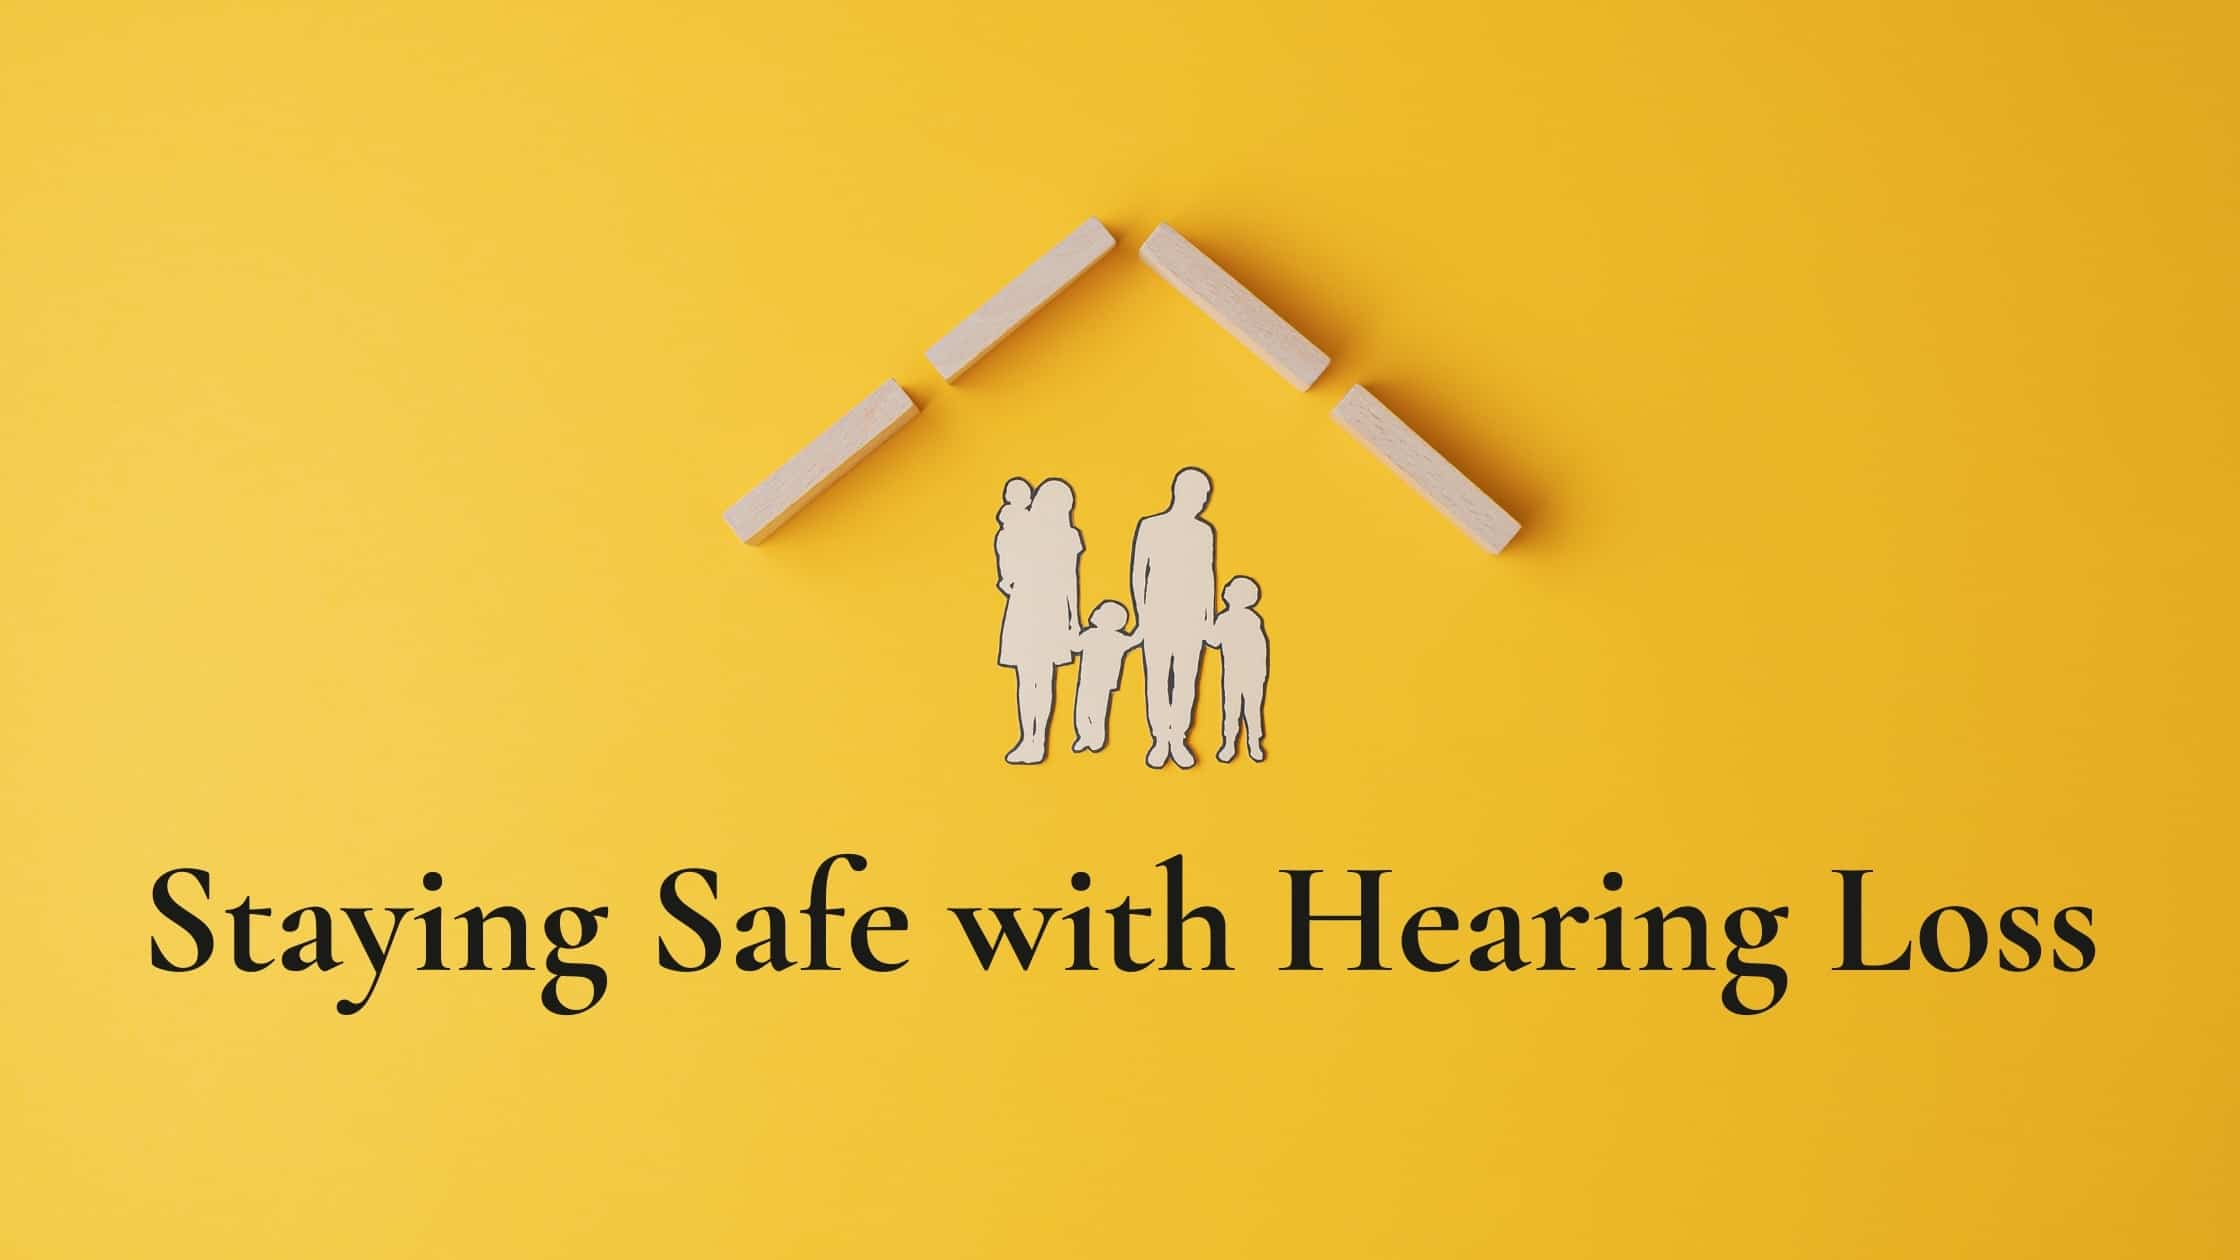 Staying Safe with Hearing Loss